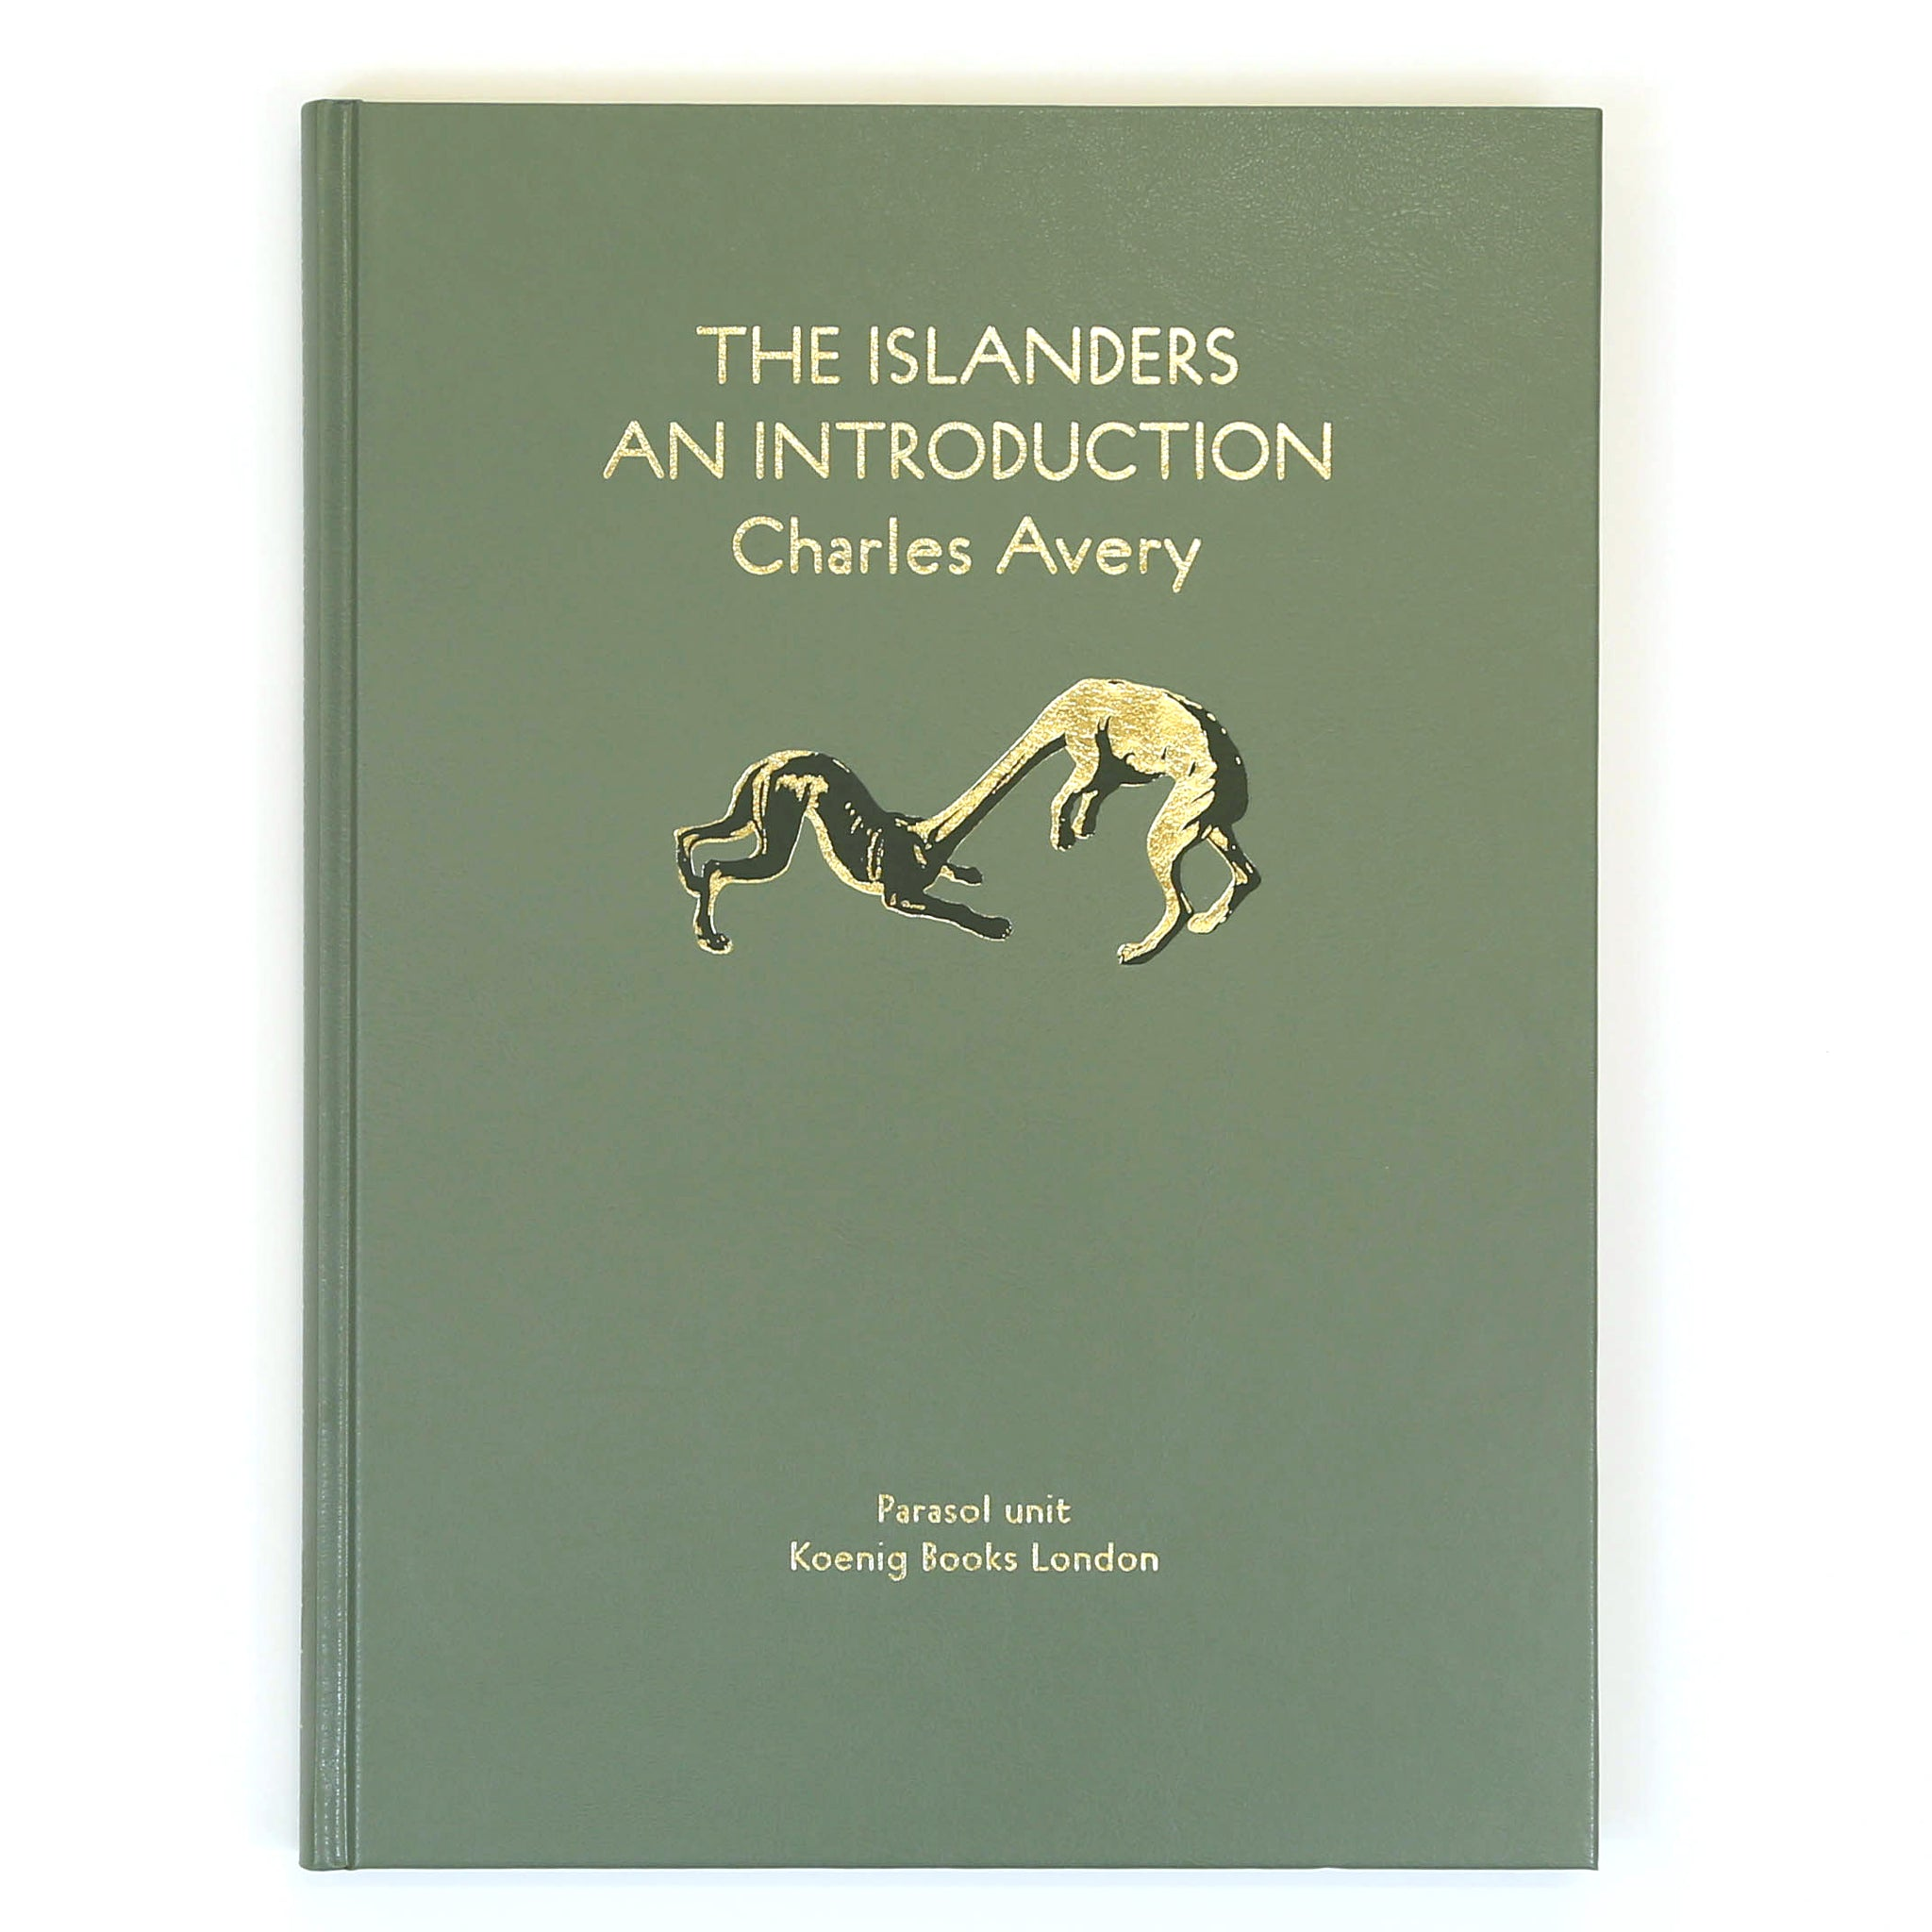 Charles Avery, The Islanders: An Introduction, 2010